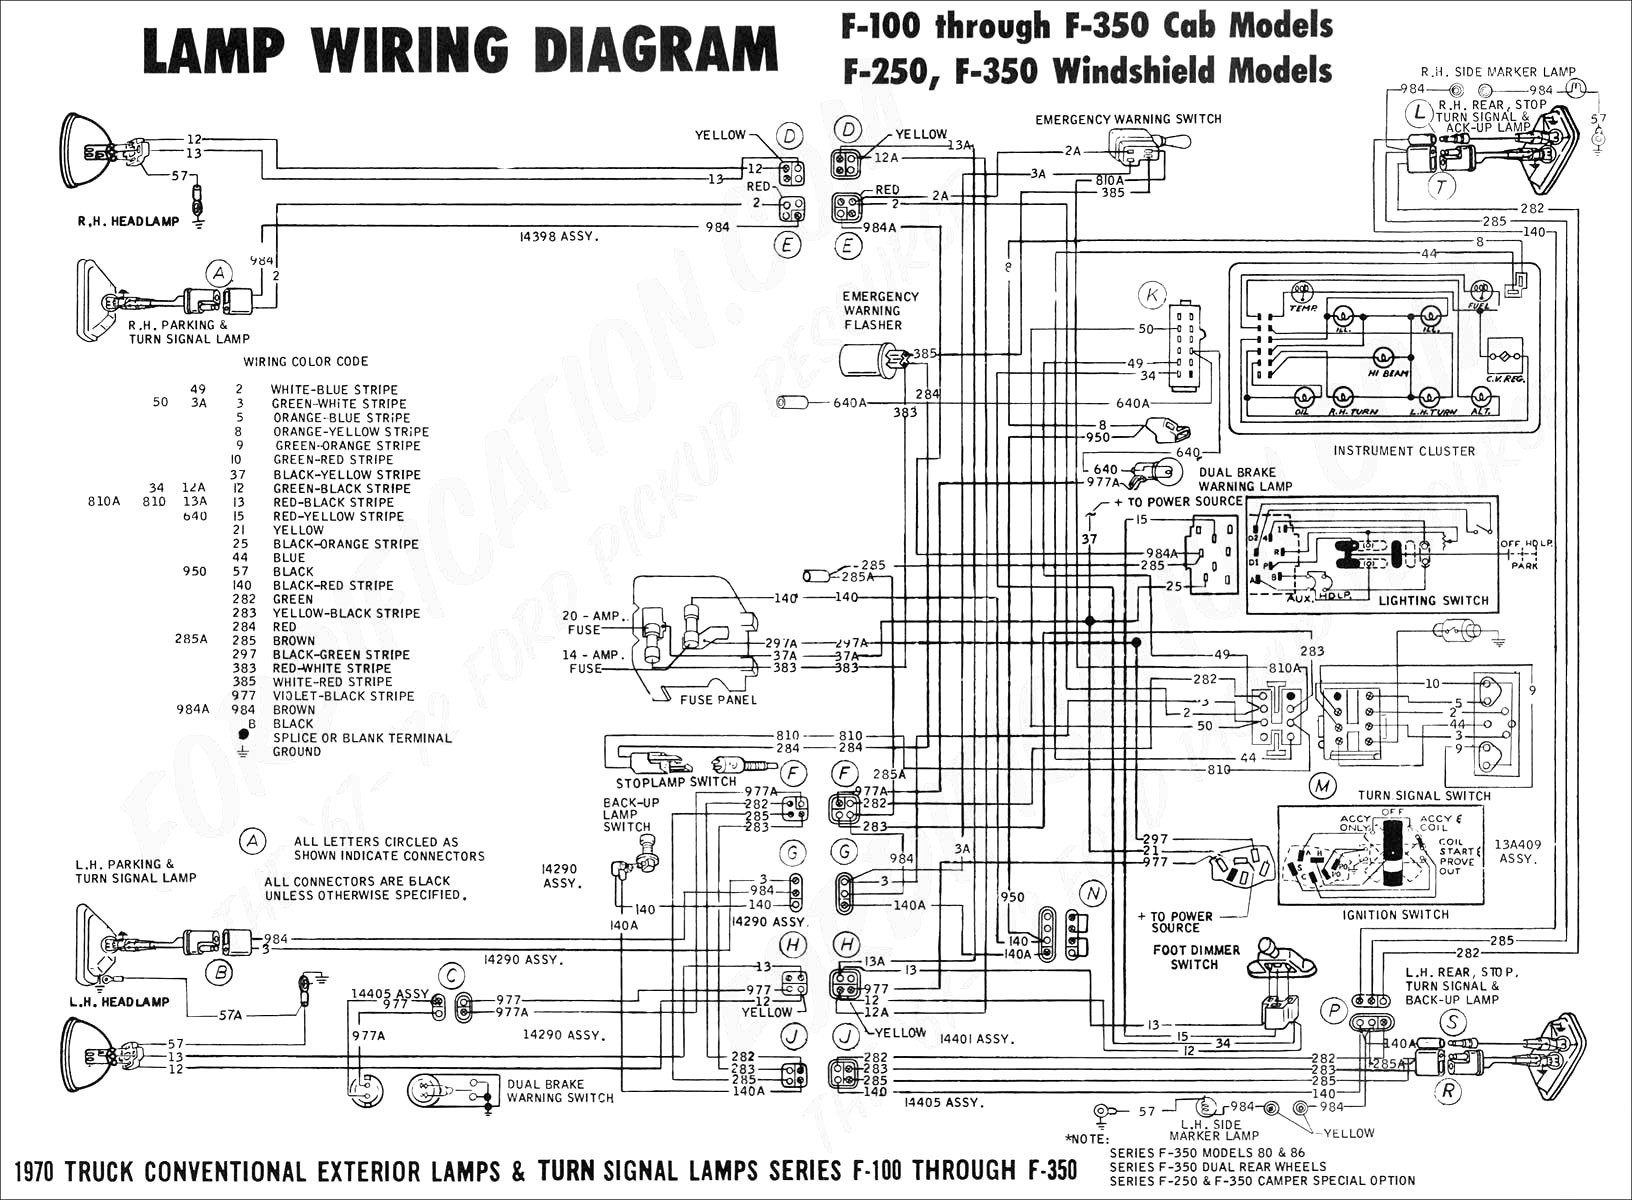 isuzu npr alternator wiring diagram Collection-Isuzu Npr Alternator Wiring Diagram Best Isuzu Alternator Wiring Diagram Valid 2017 Ford Super Duty Trailer 12-e